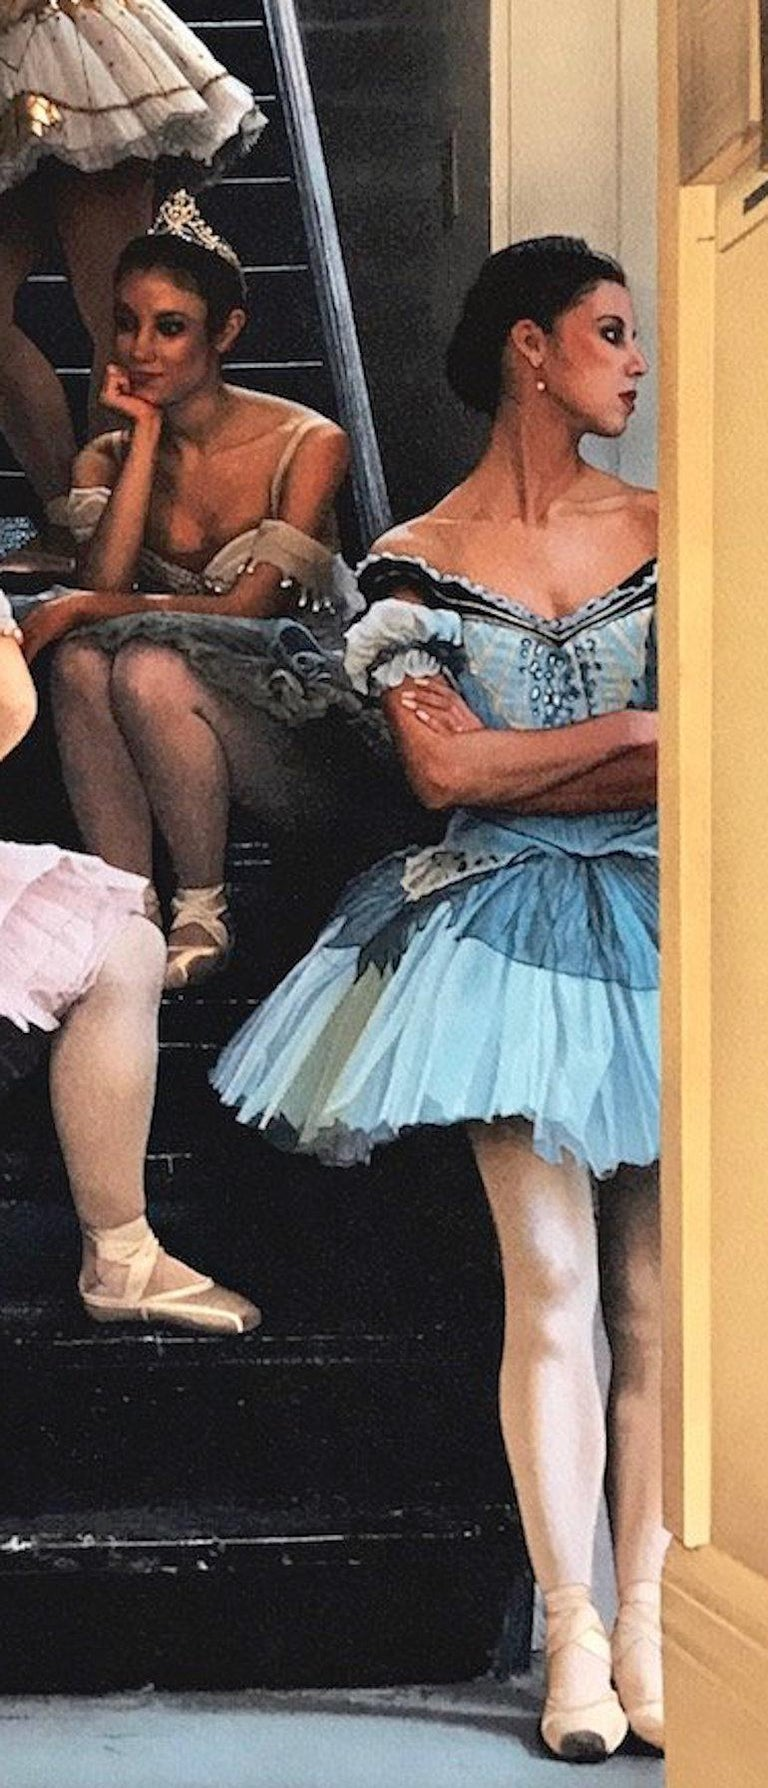 WAITING IN THE WINGS Signed Lithograph, Dance Portrait, Ballet, Pink Blue Tutus - Photorealist Print by Douglas Hofmann